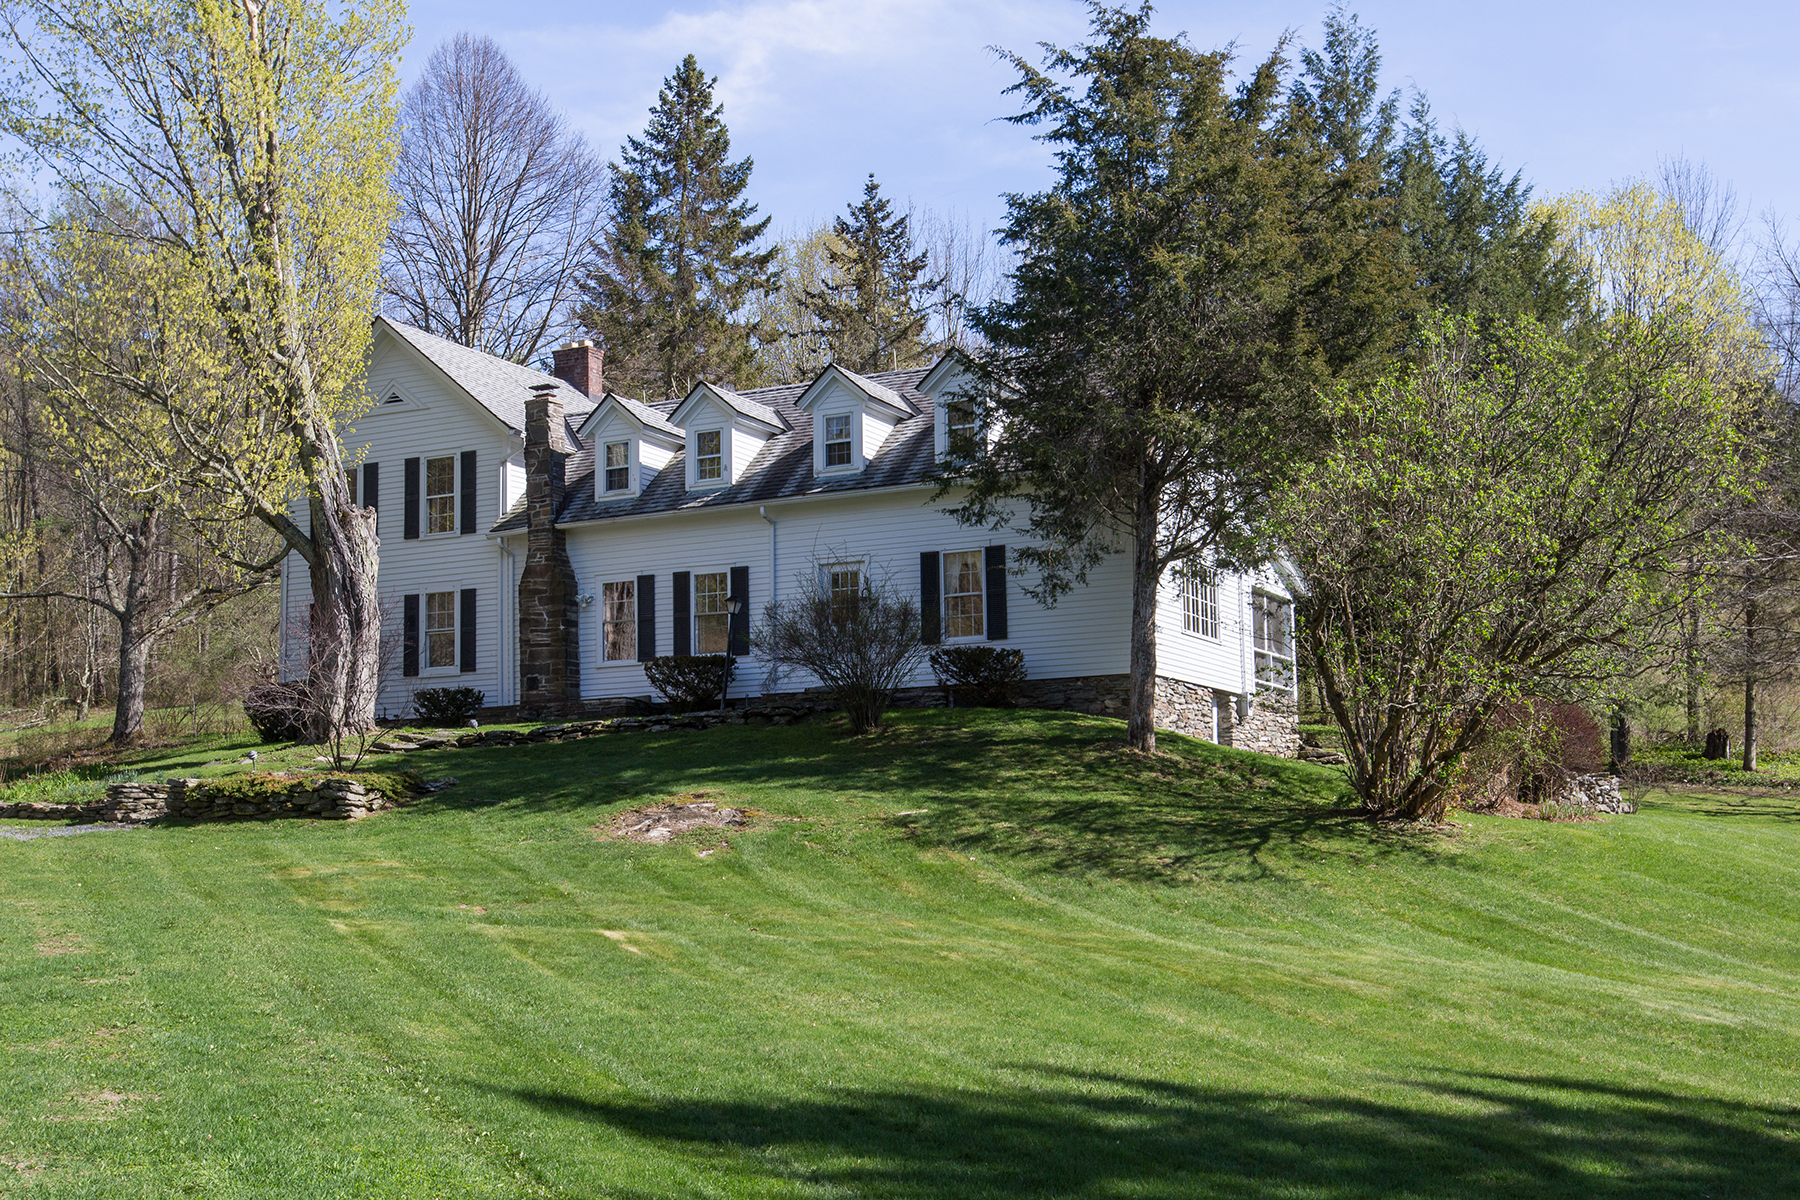 Single Family Home for Sale at Butternut Farm 359 Mckie Hollow Rd Cambridge, New York 12816 United States